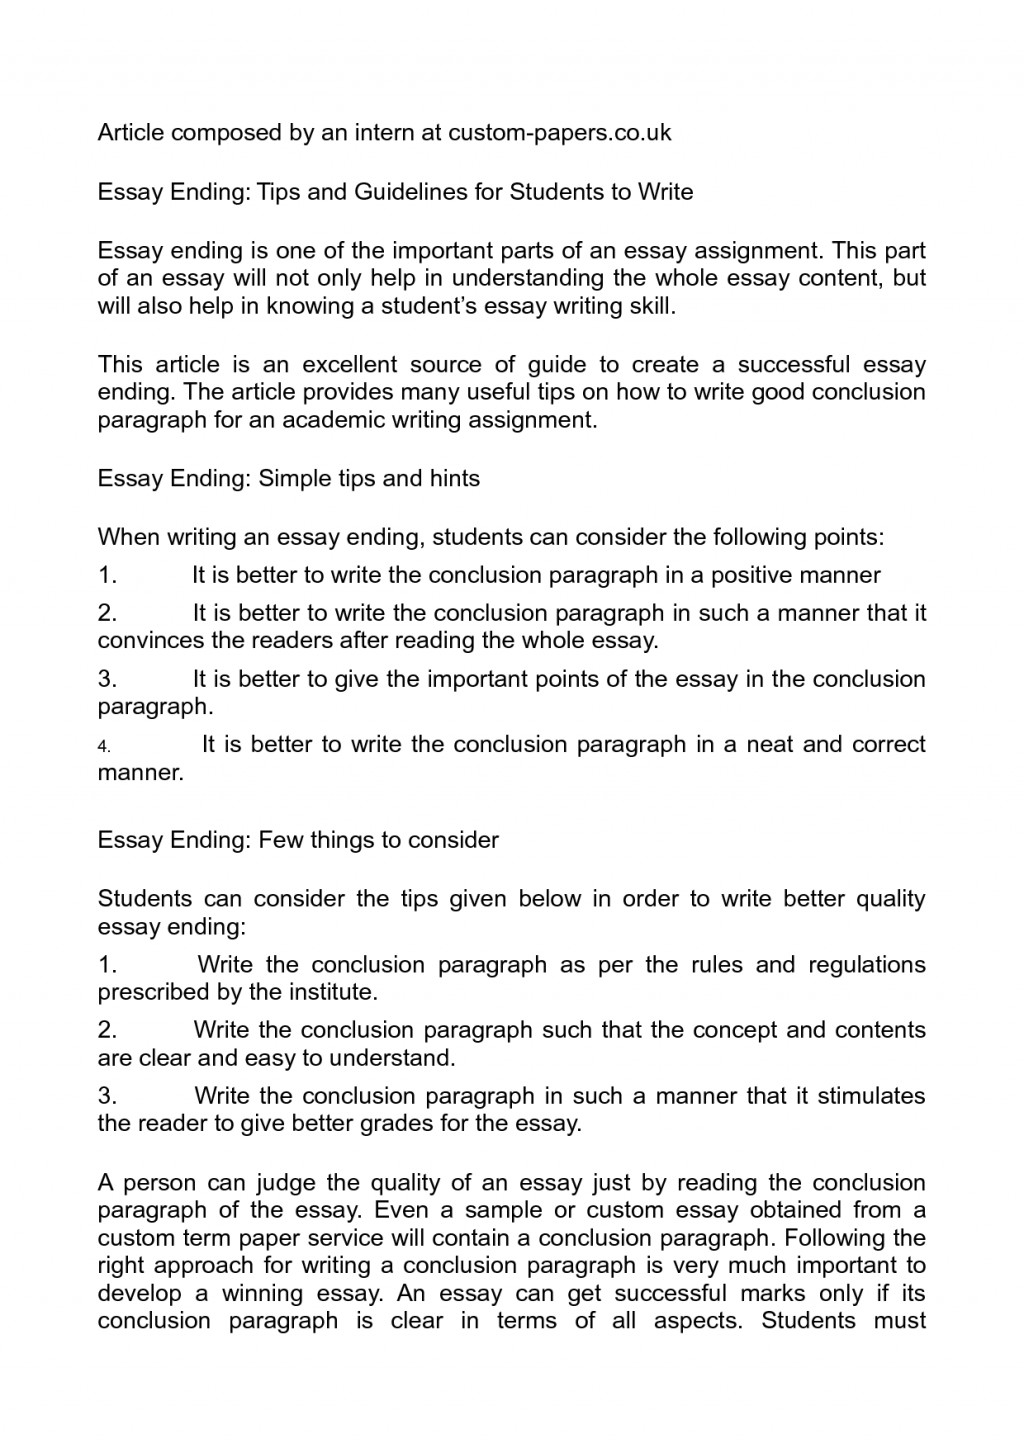 001 Pzwnxlang9 Ending An Essay Excellent Ways To End Expository With A Rhetorical Question Large